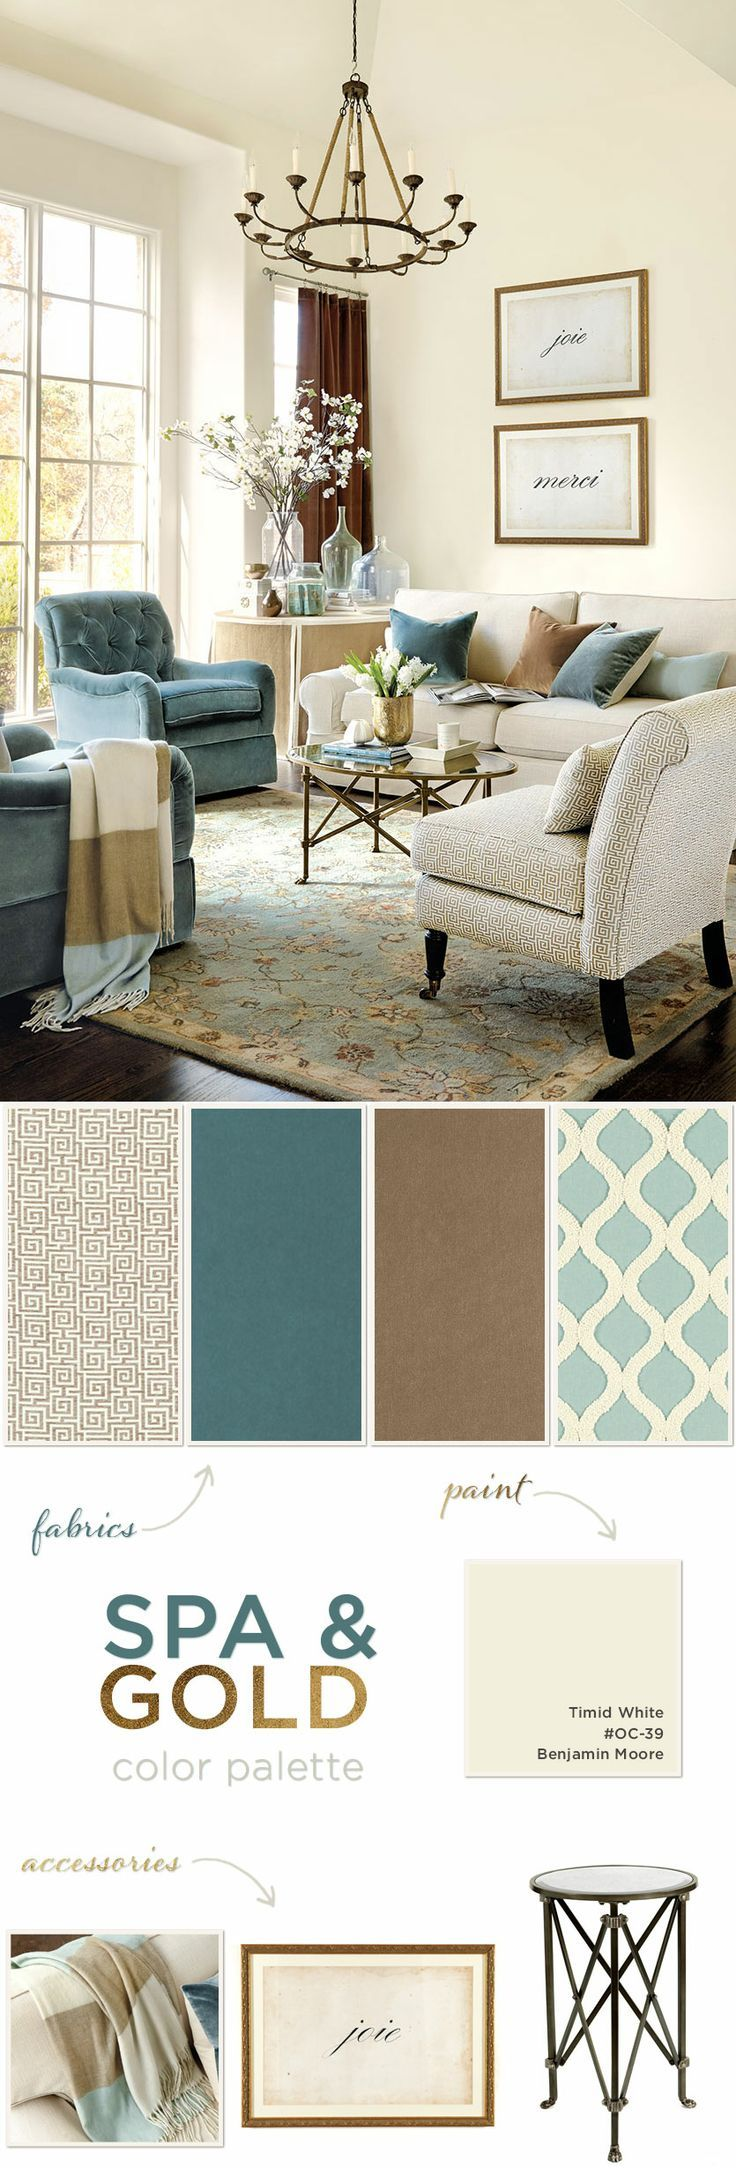 Nice to see a warm cream toned colour palette with the teal and brown accents